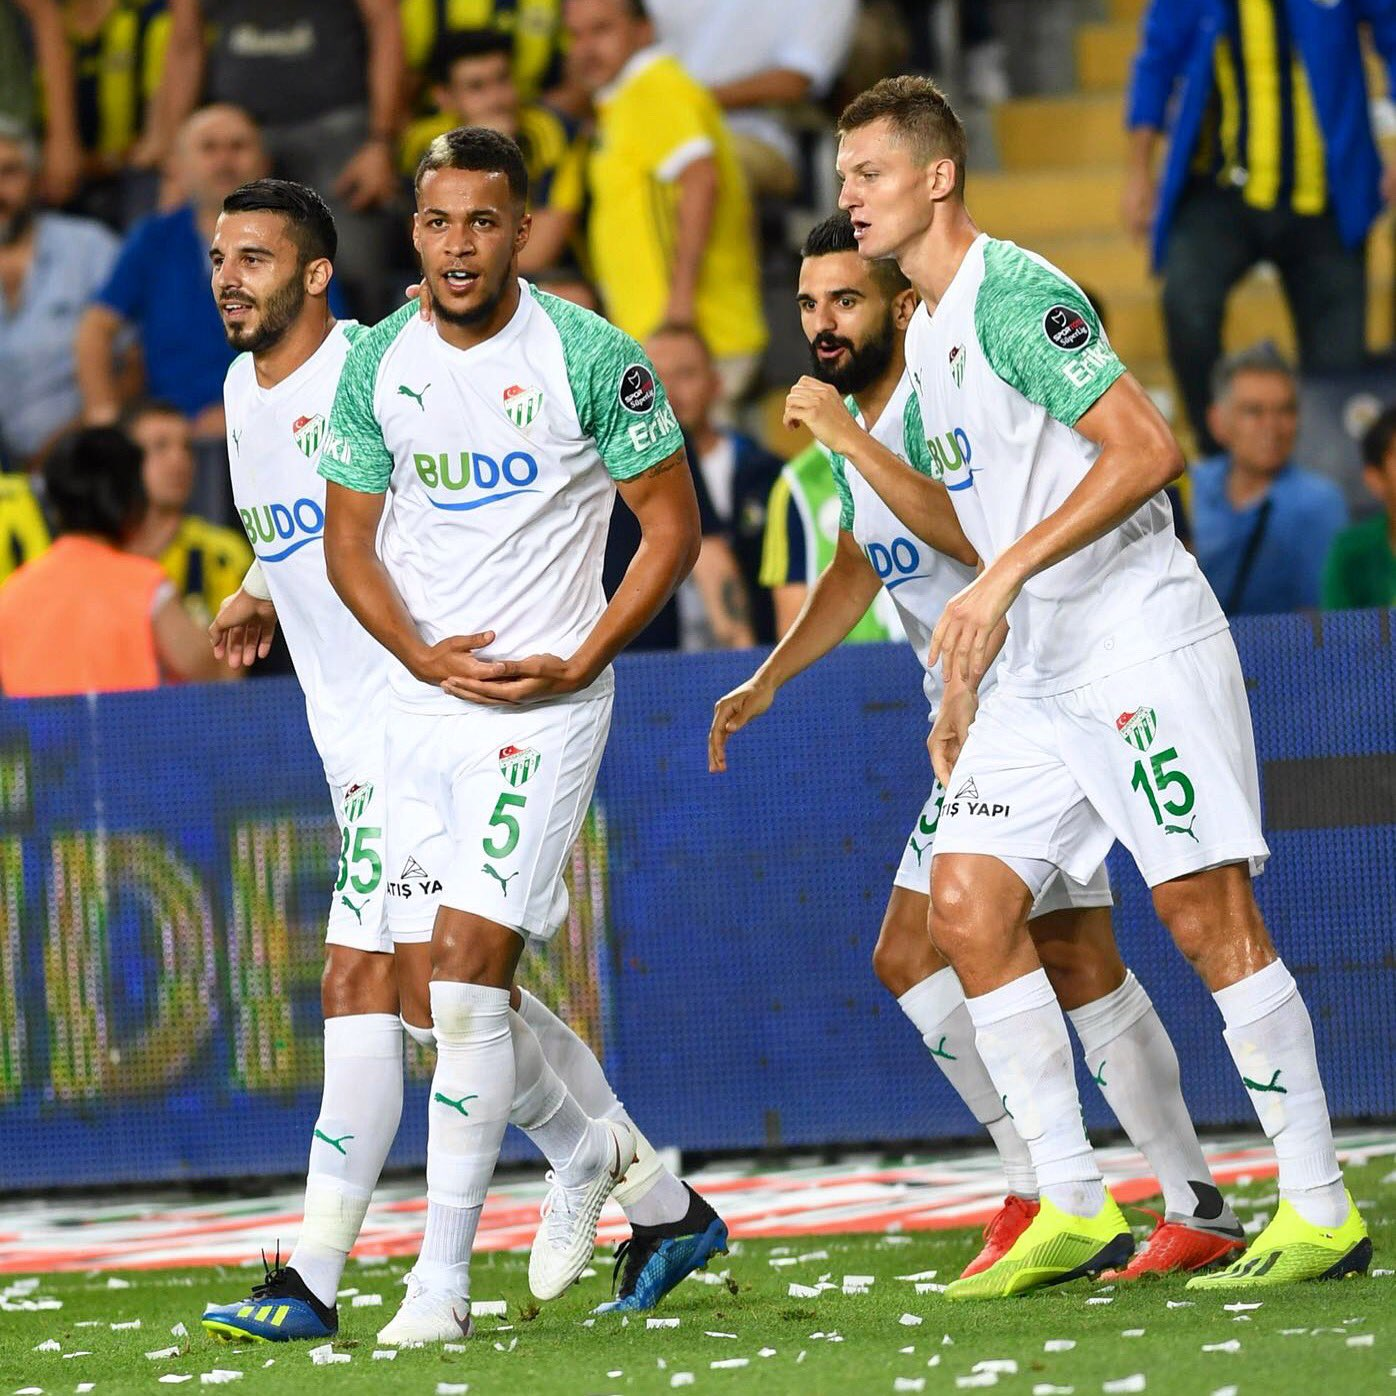 Udinese Reach Agreement With Bursaspor To Sign Troost-Ekong